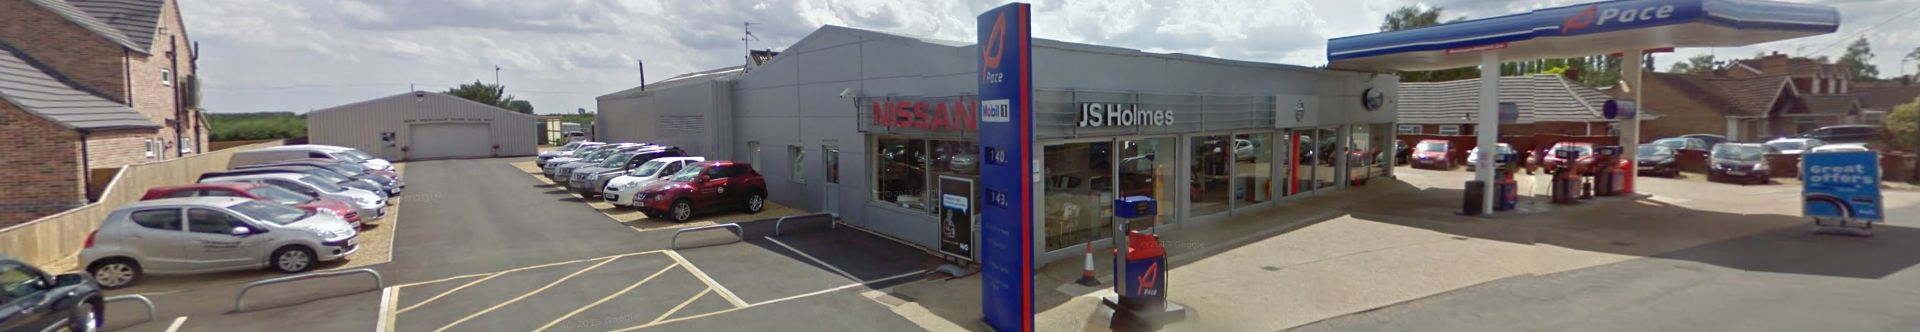 NISSAN MOTABILITY SPECIALISTS AT JS HOLMES